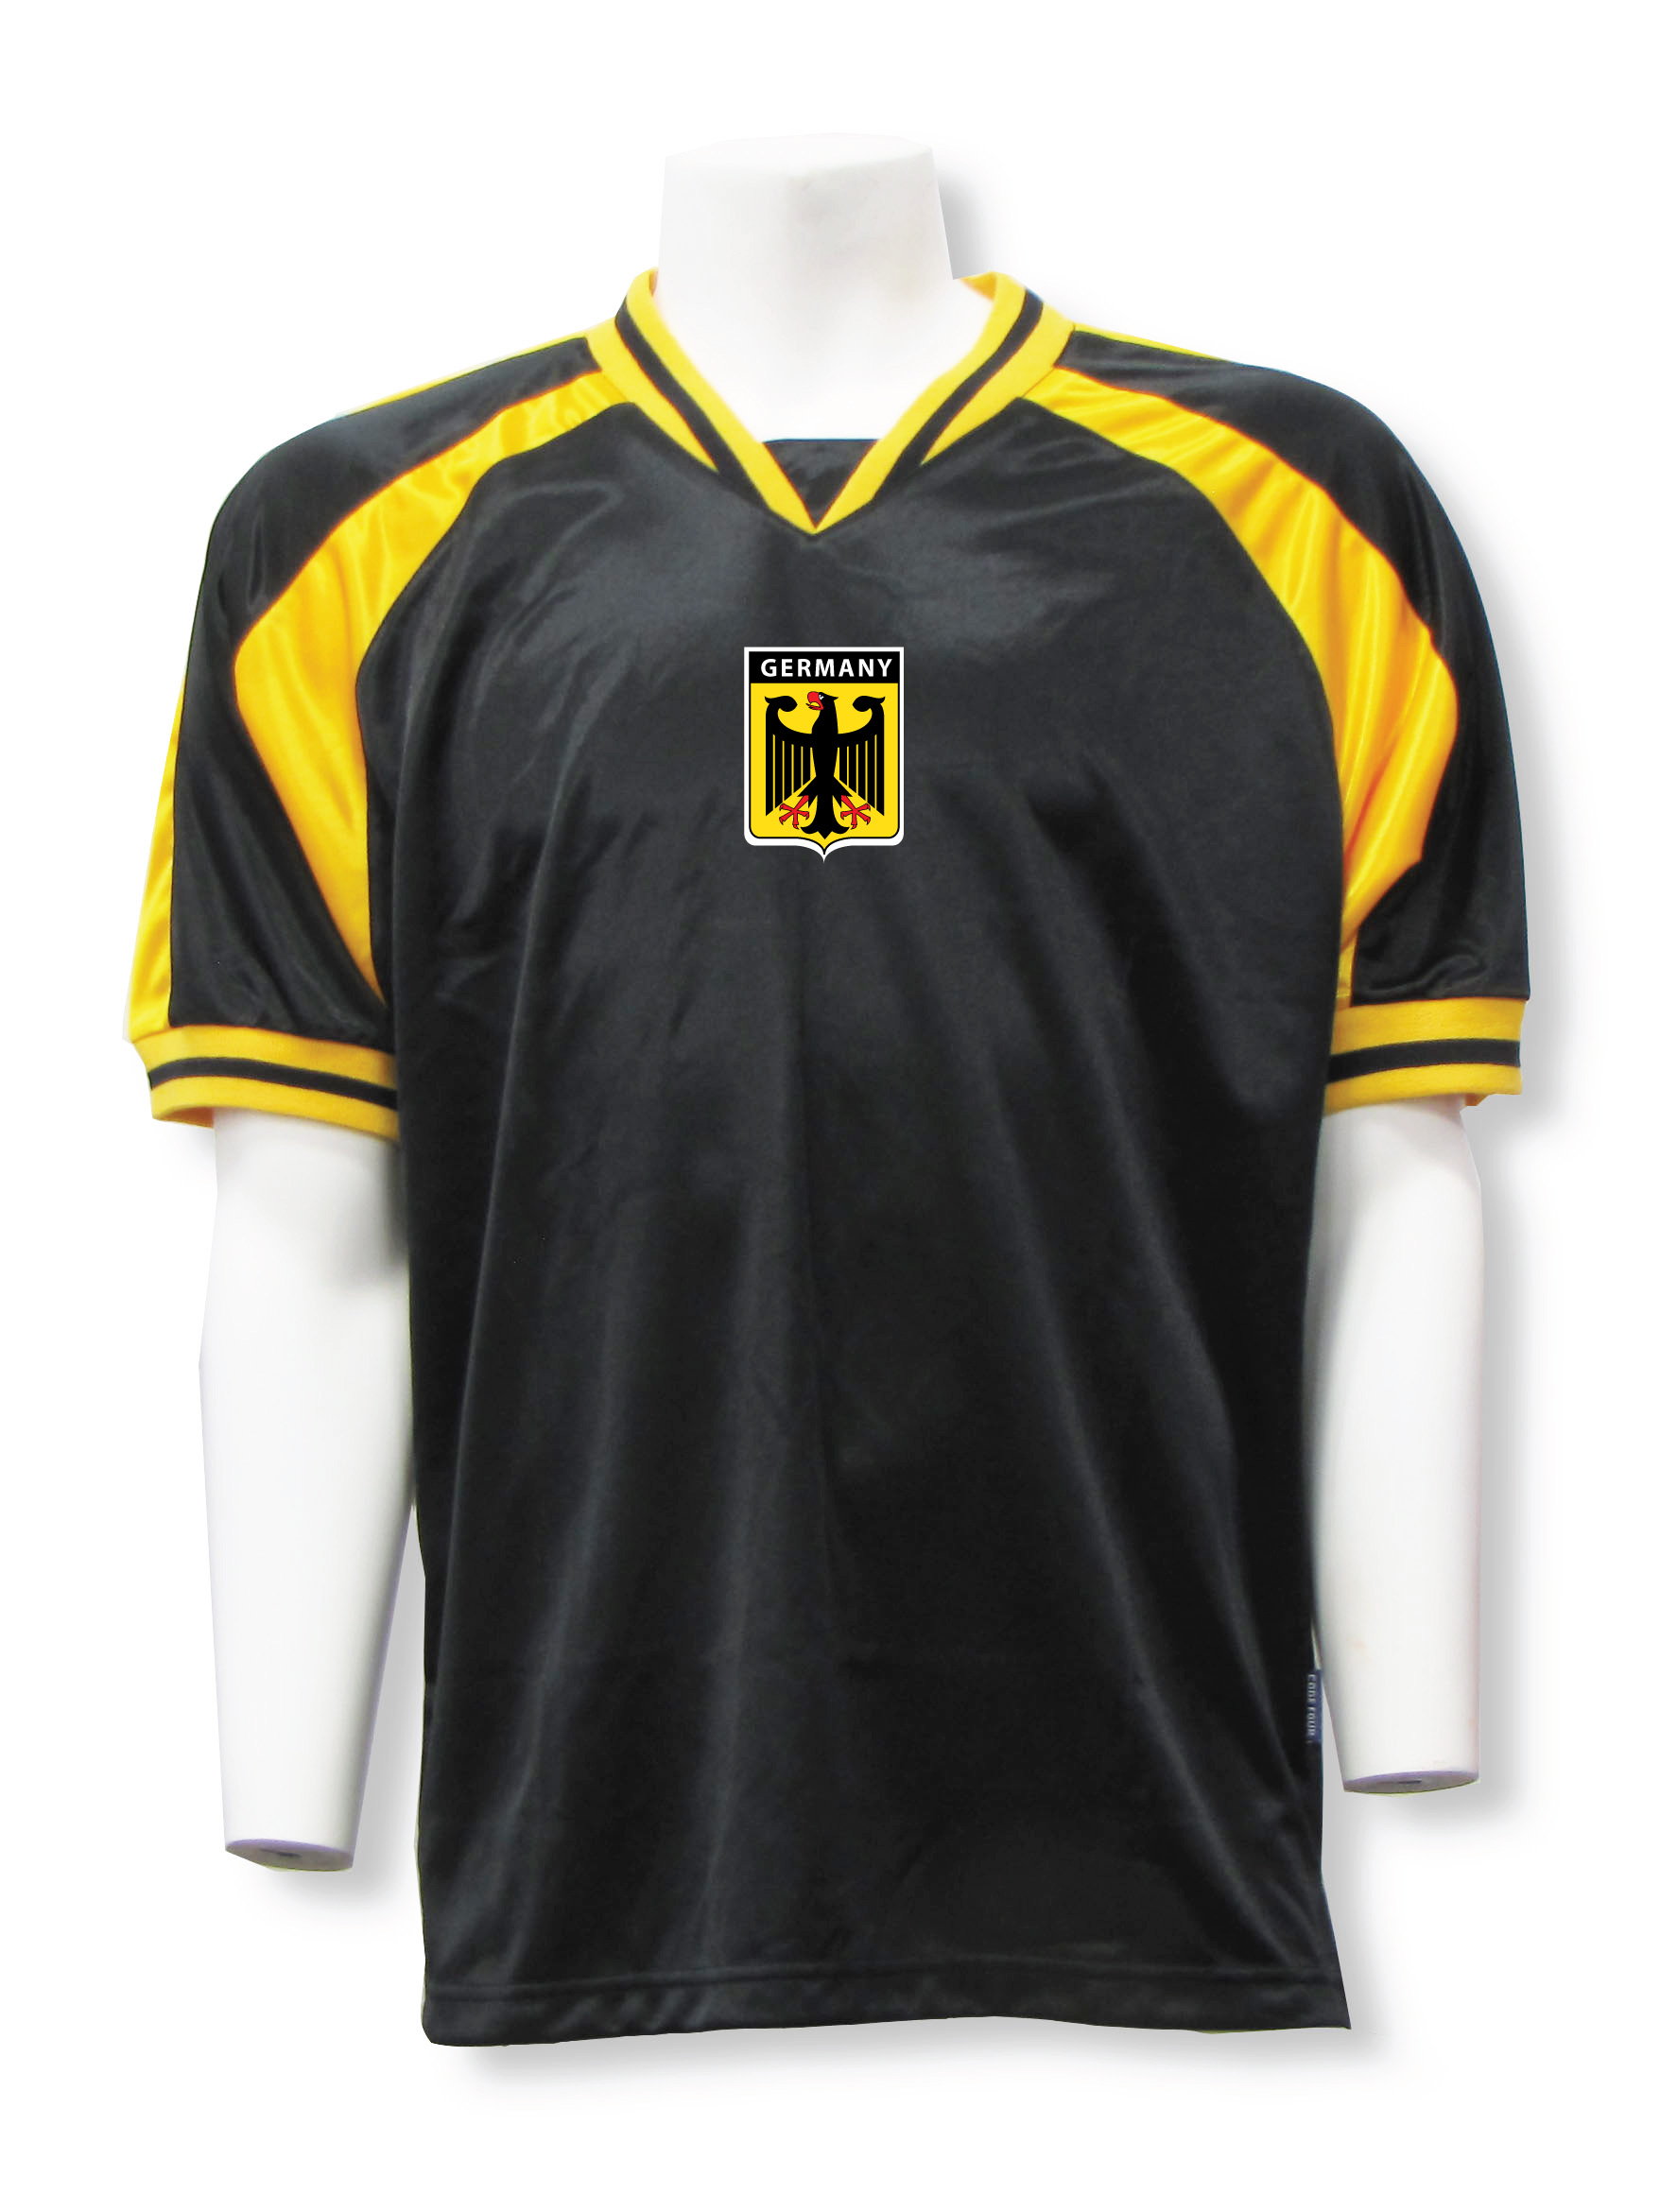 Germany jersey in black/gold